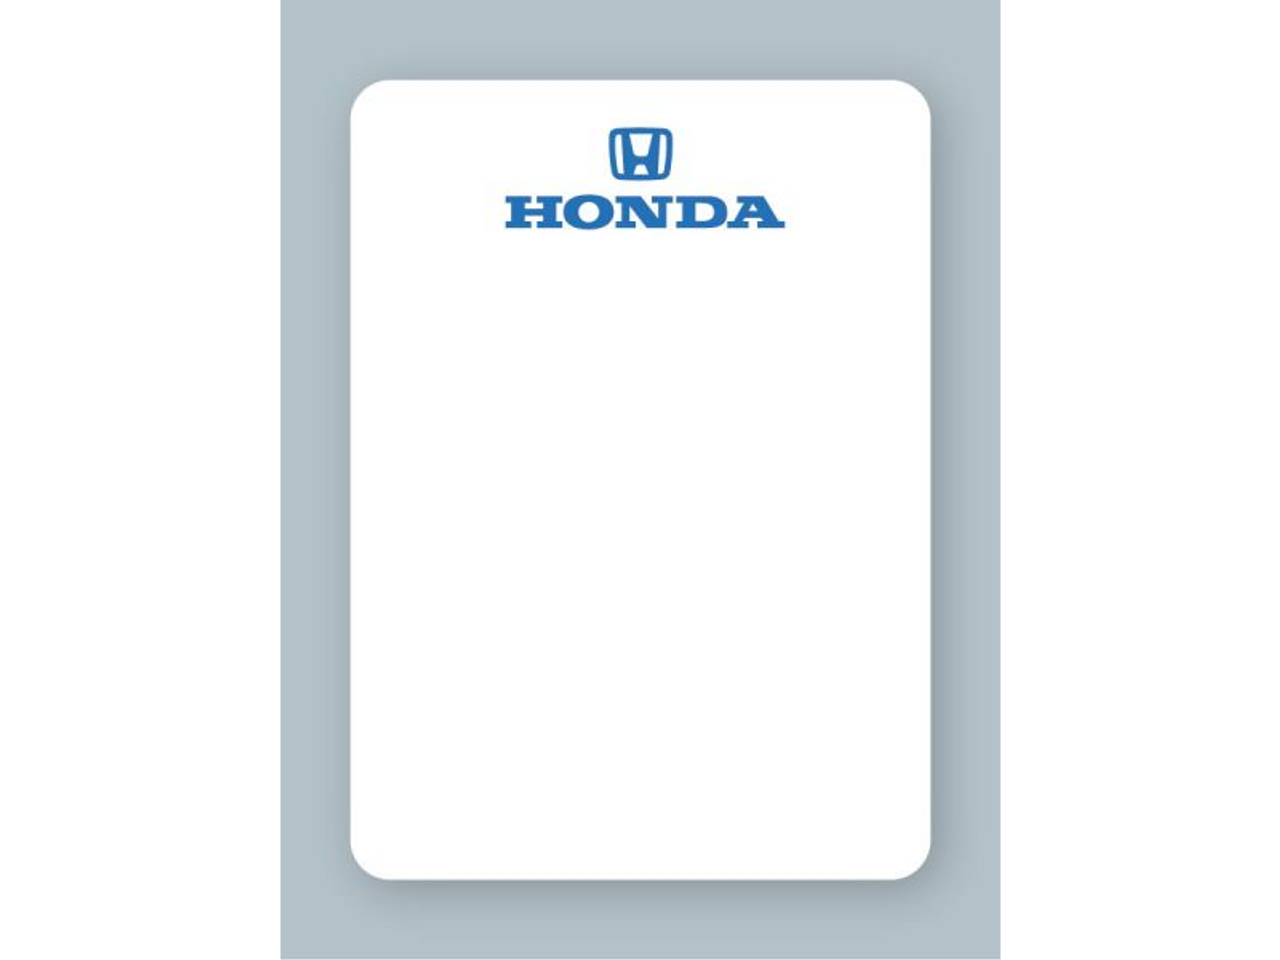 Honda Oil Change Stickers - For use in an oil sticker printer